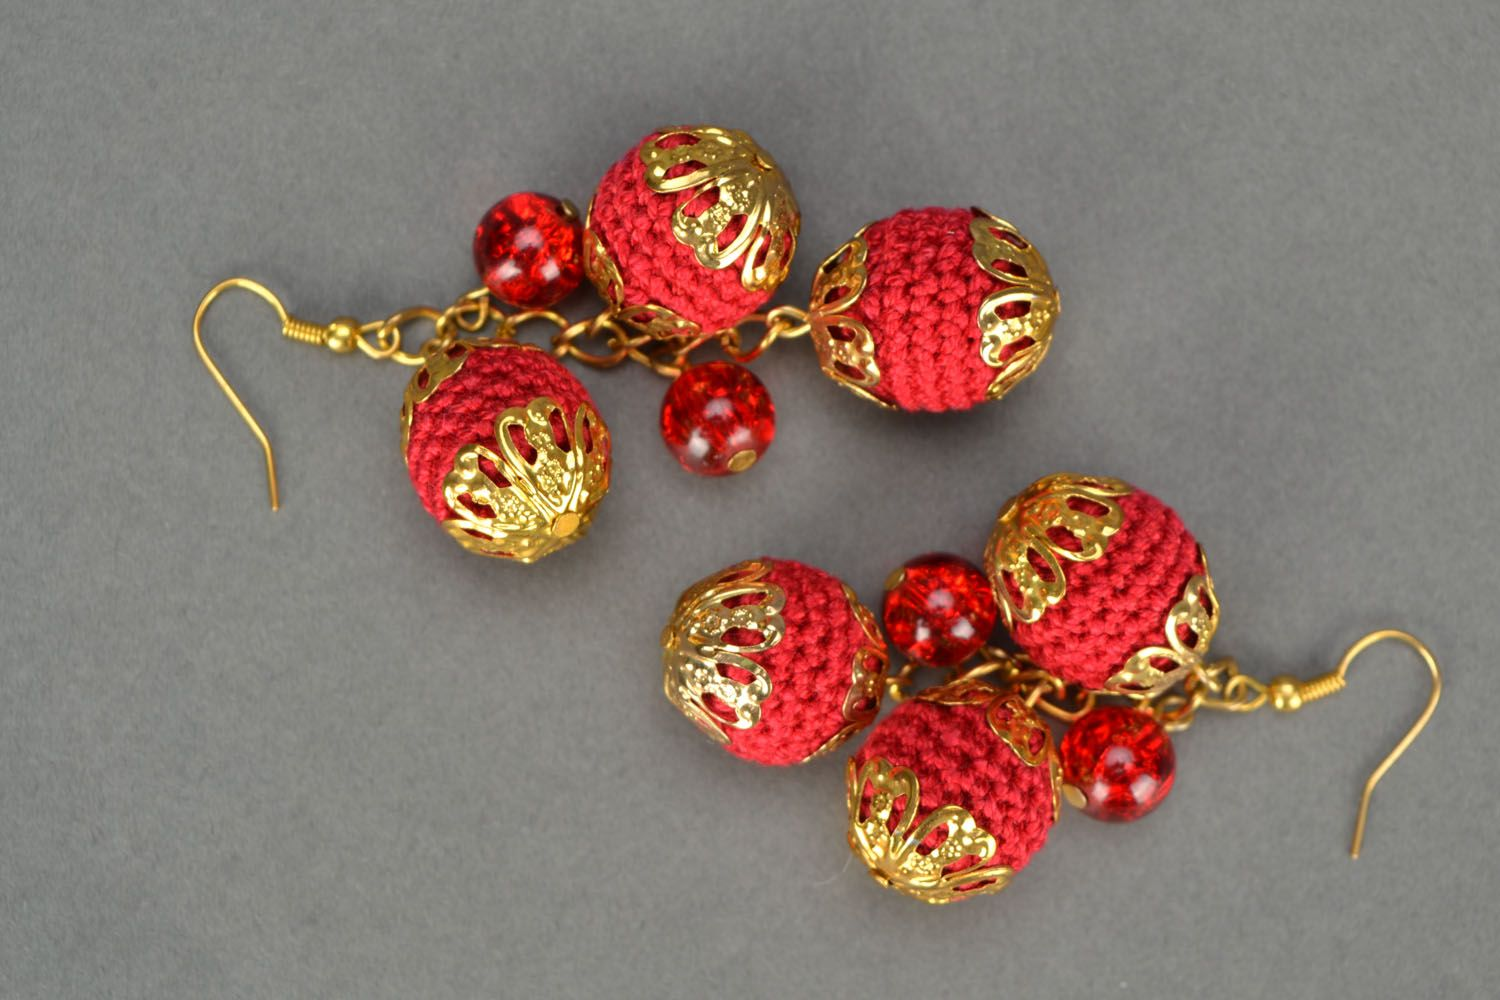 Crochet earrings with charms Cherry Glamor photo 3